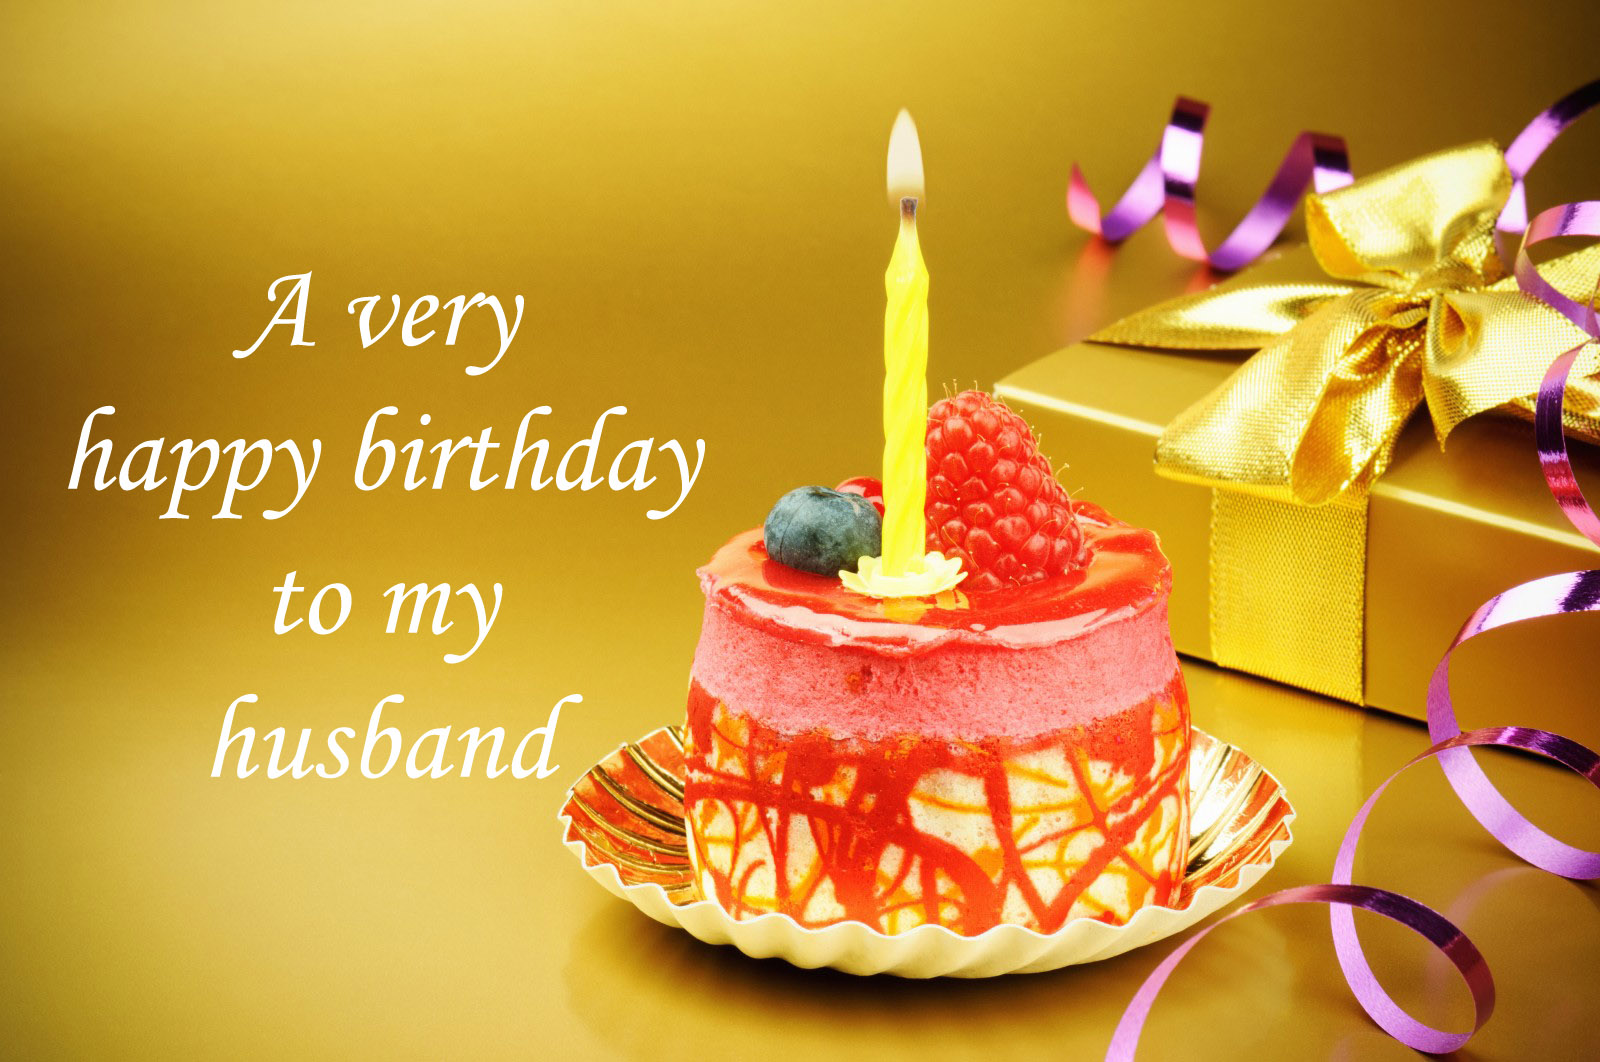 sweet birthday message for husband ; a-very-happy-birthday-to-my-husband